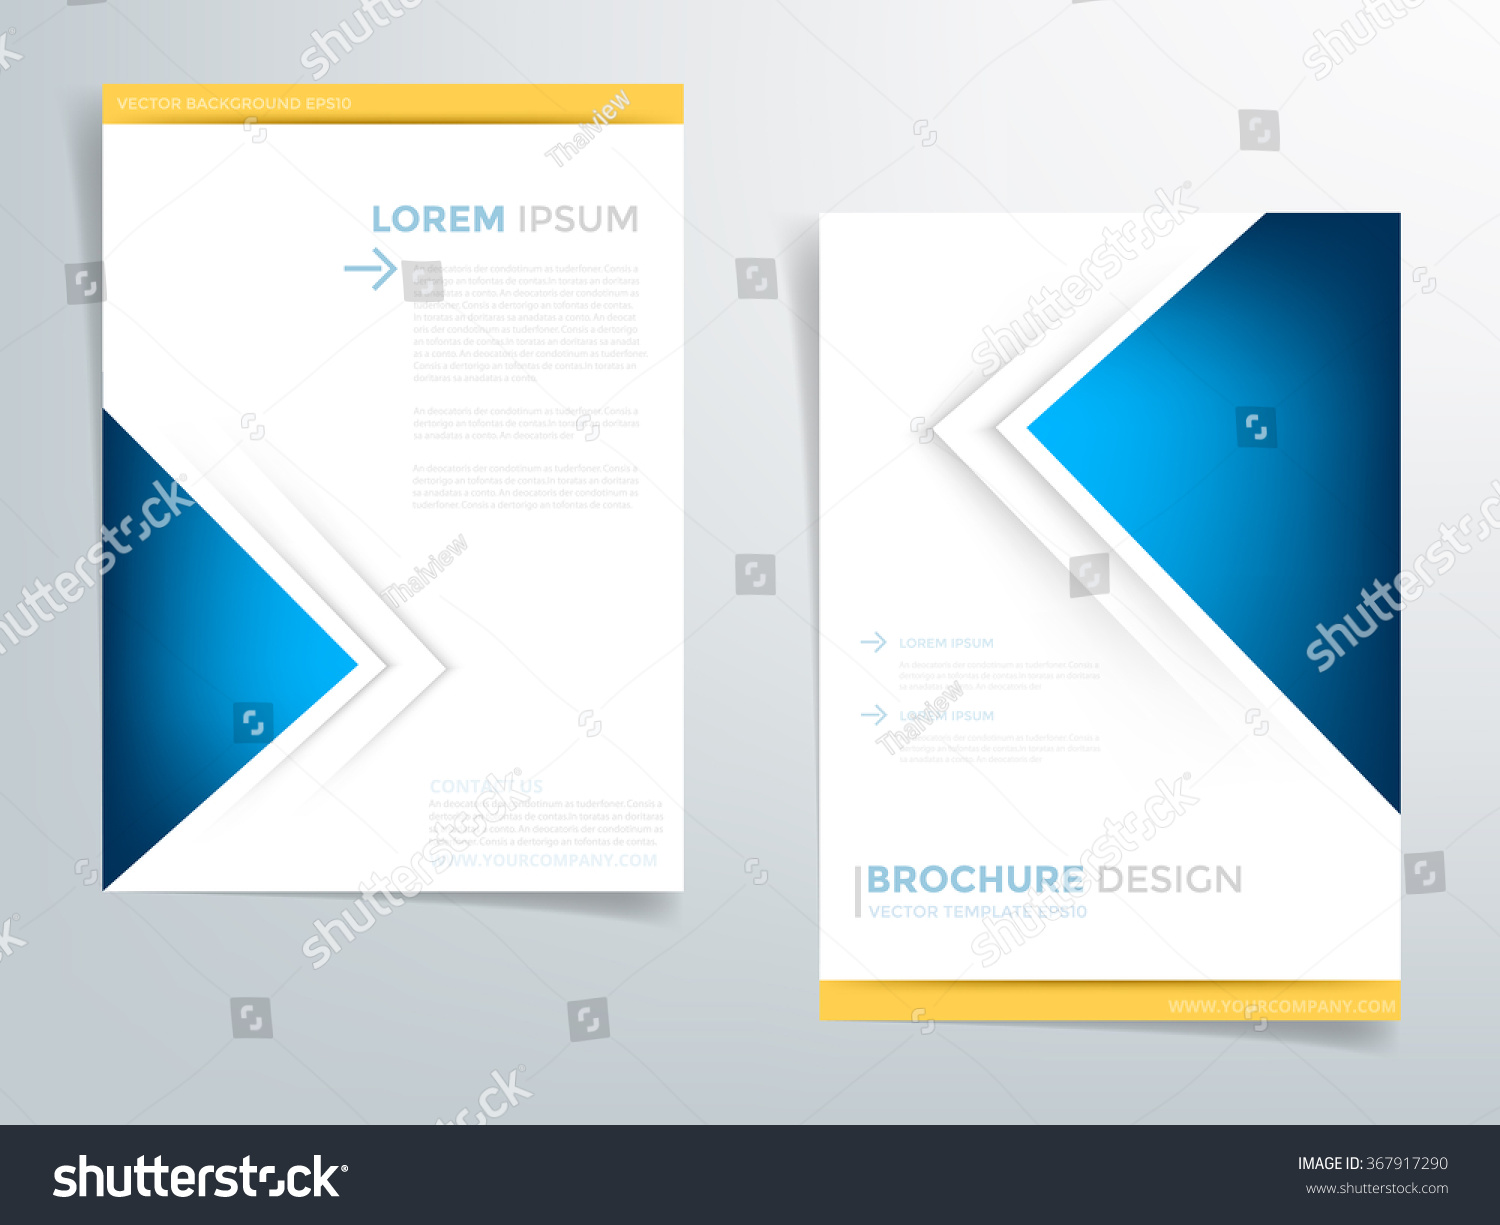 Blue brochure template flyer design background stock for Background brochure templates